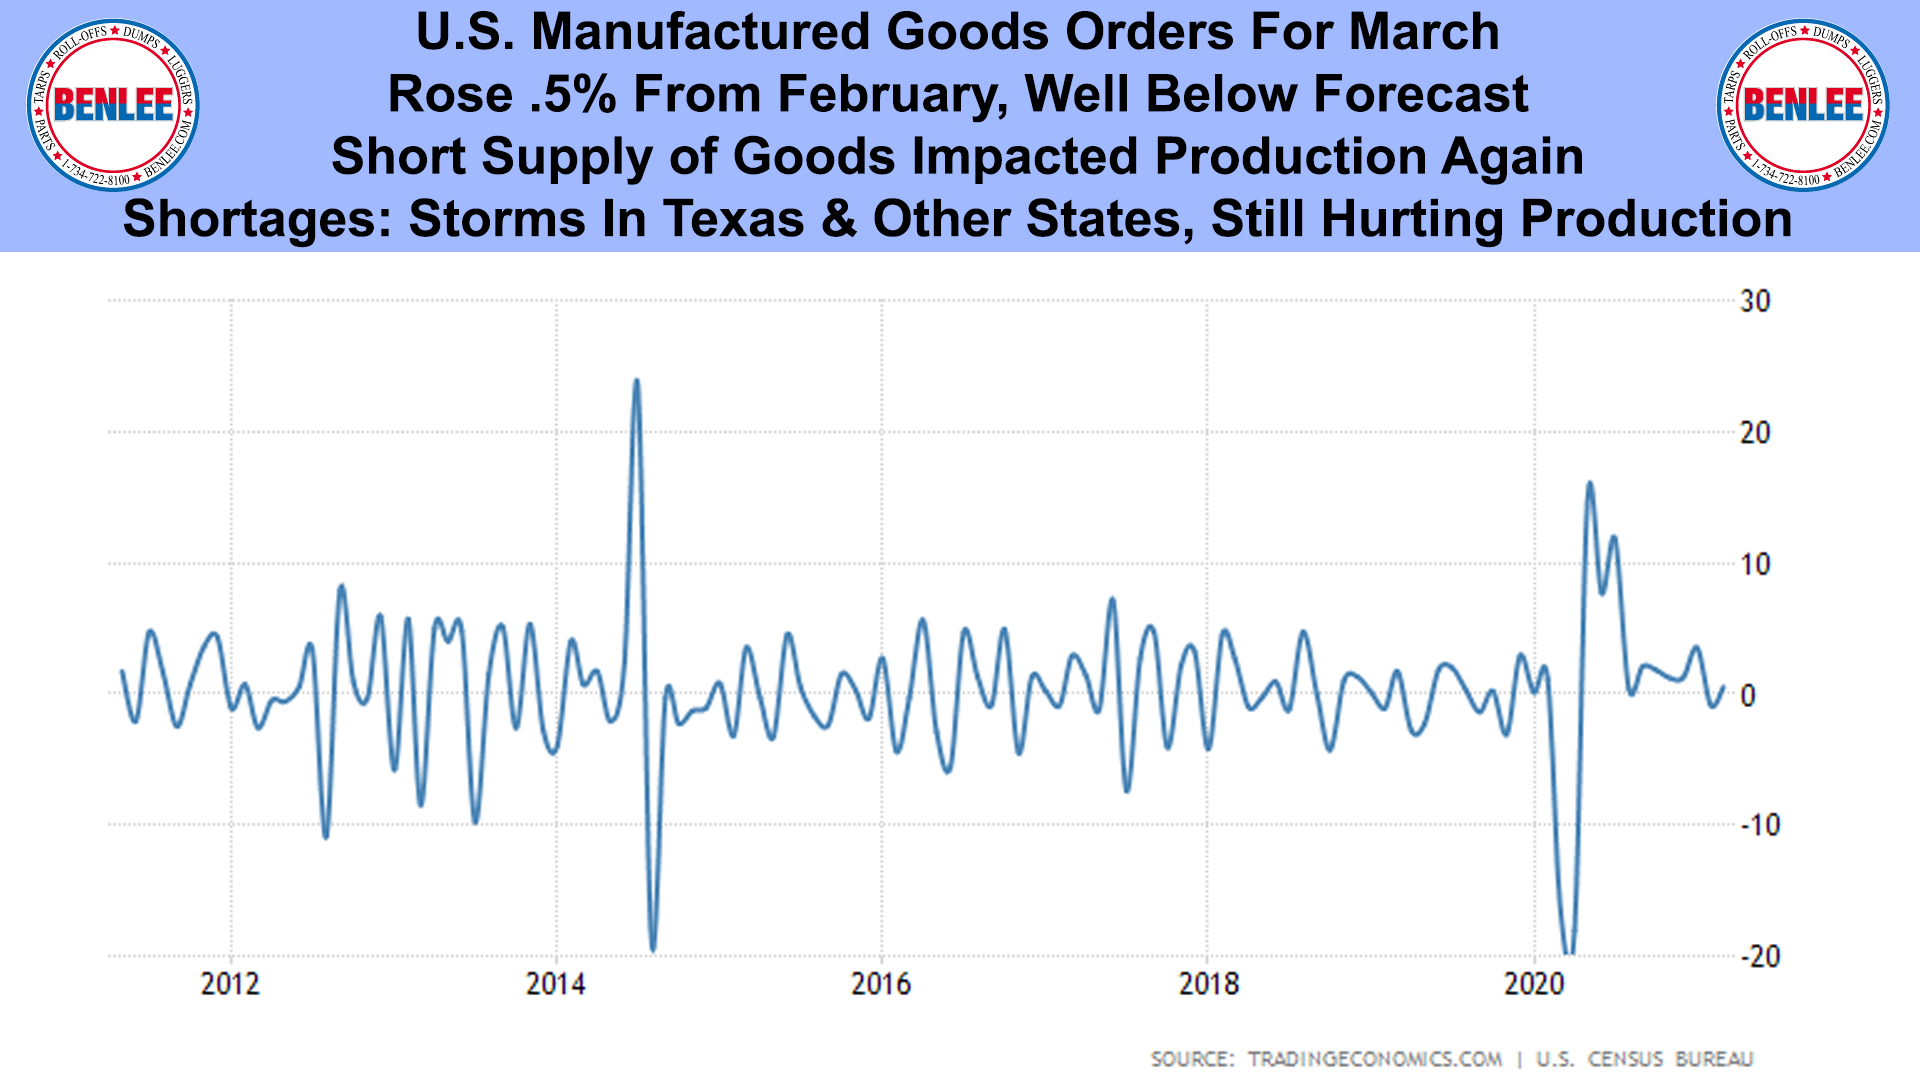 U.S. Manufactured Goods Orders For March